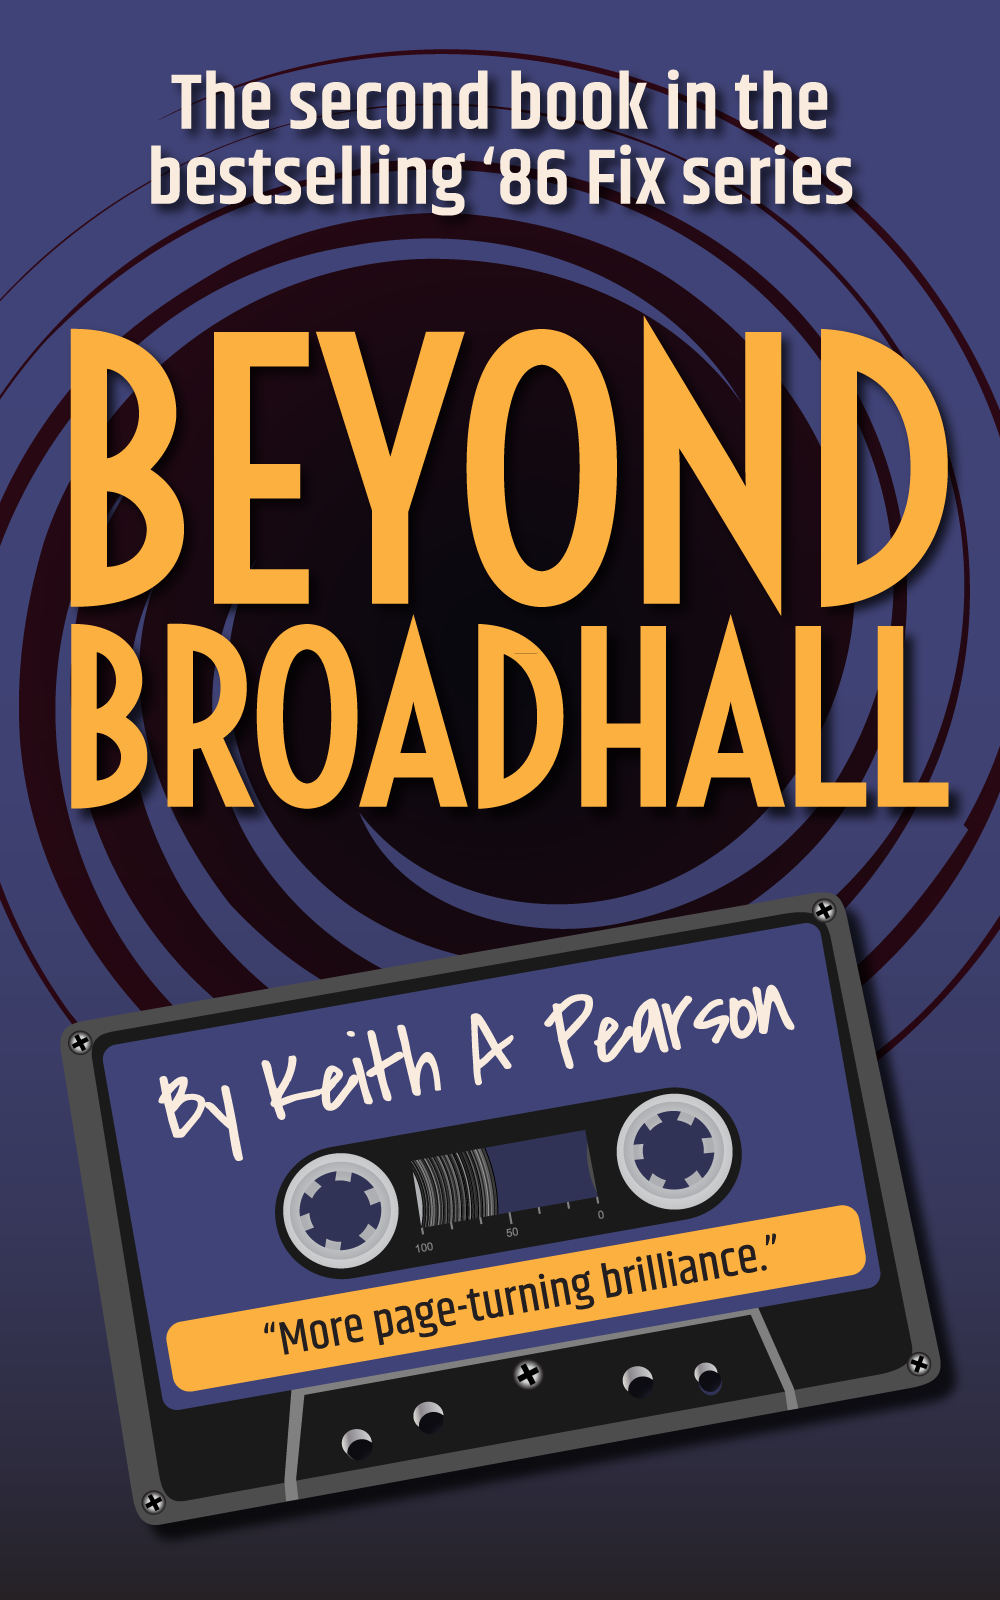 Beyond Broadhall Novel by Keith A Pearson